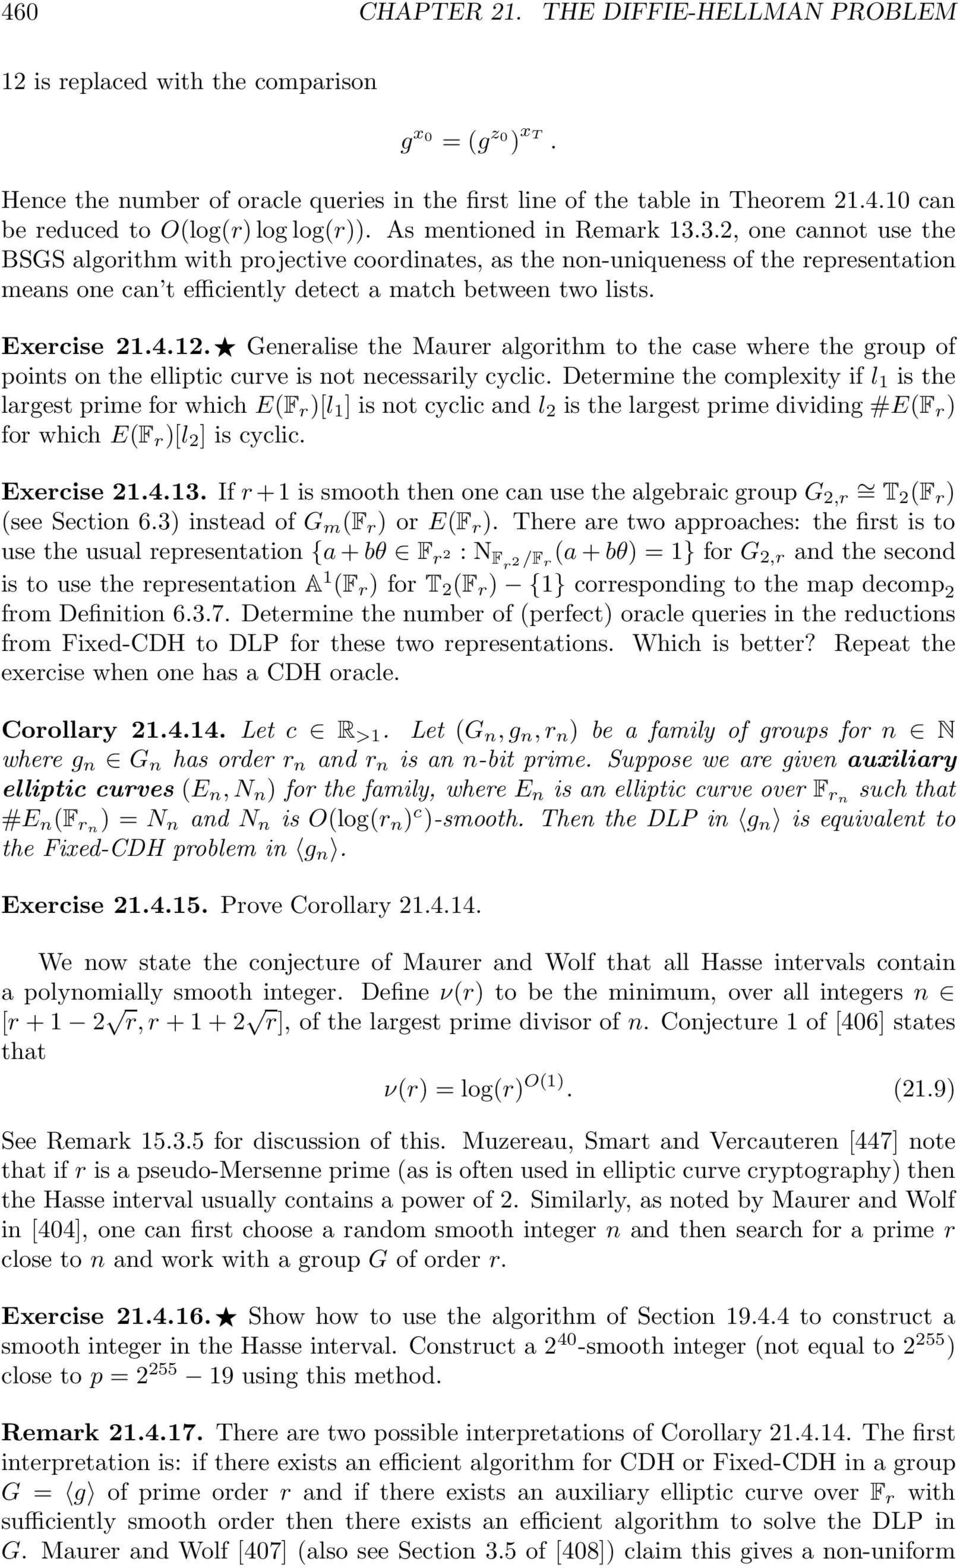 Exercise 21.4.12. Generalise the Maurer algorithm to the case where the group of points on the elliptic curve is not necessarily cyclic.